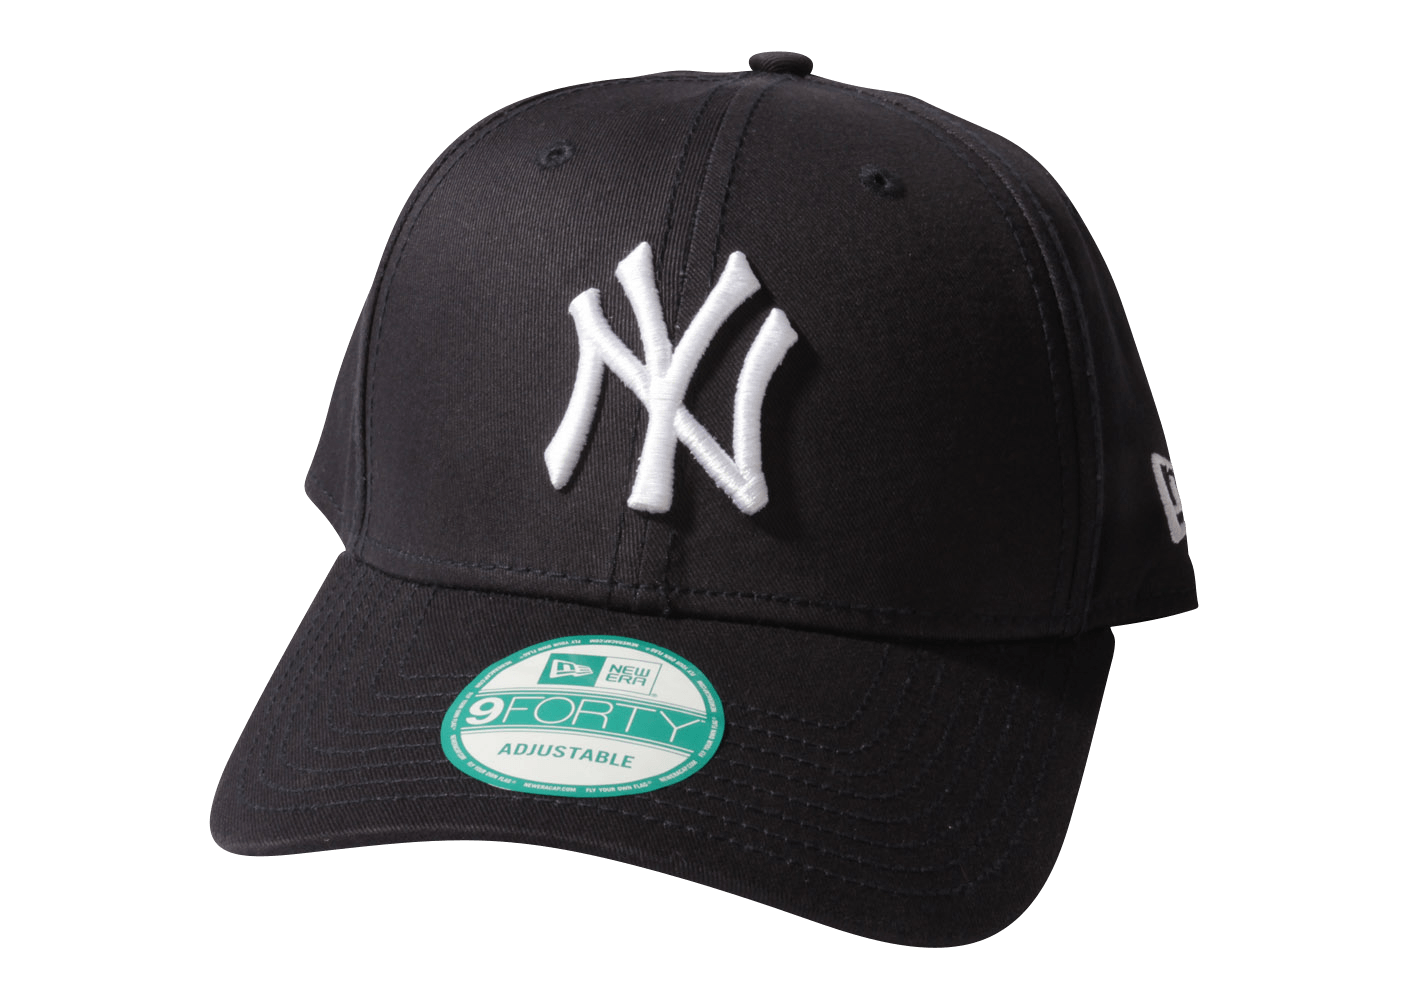 new era casquette 9 40 mlb the league new york yankees bleu marine casquettes chausport. Black Bedroom Furniture Sets. Home Design Ideas